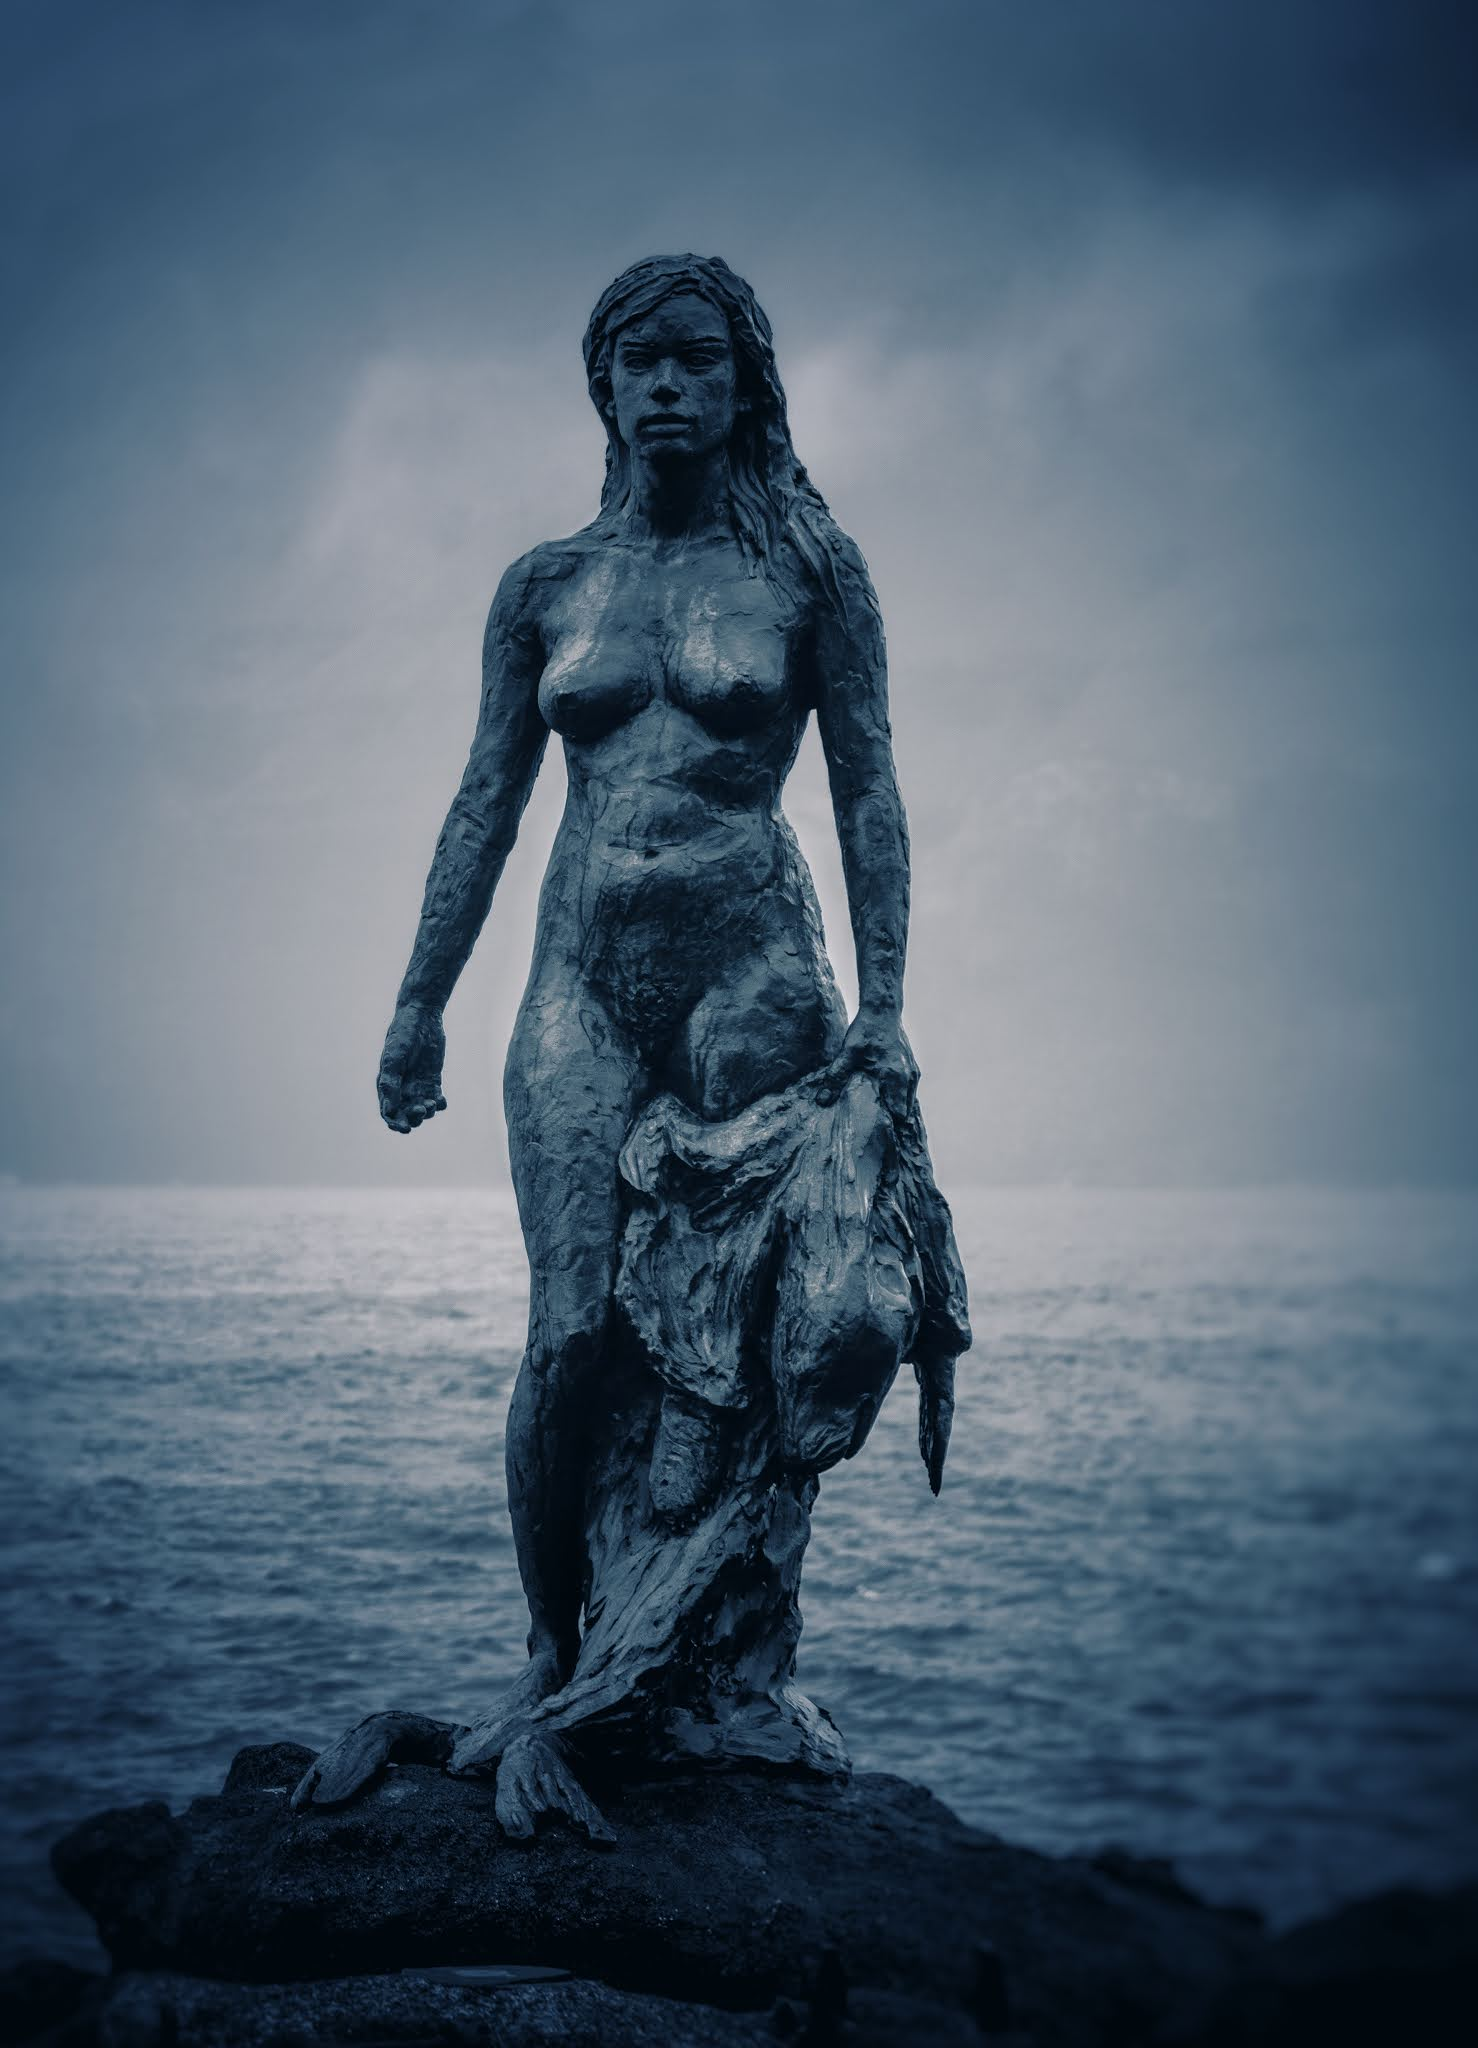 The selkie statue in Mikladalur, Faroe Islands.